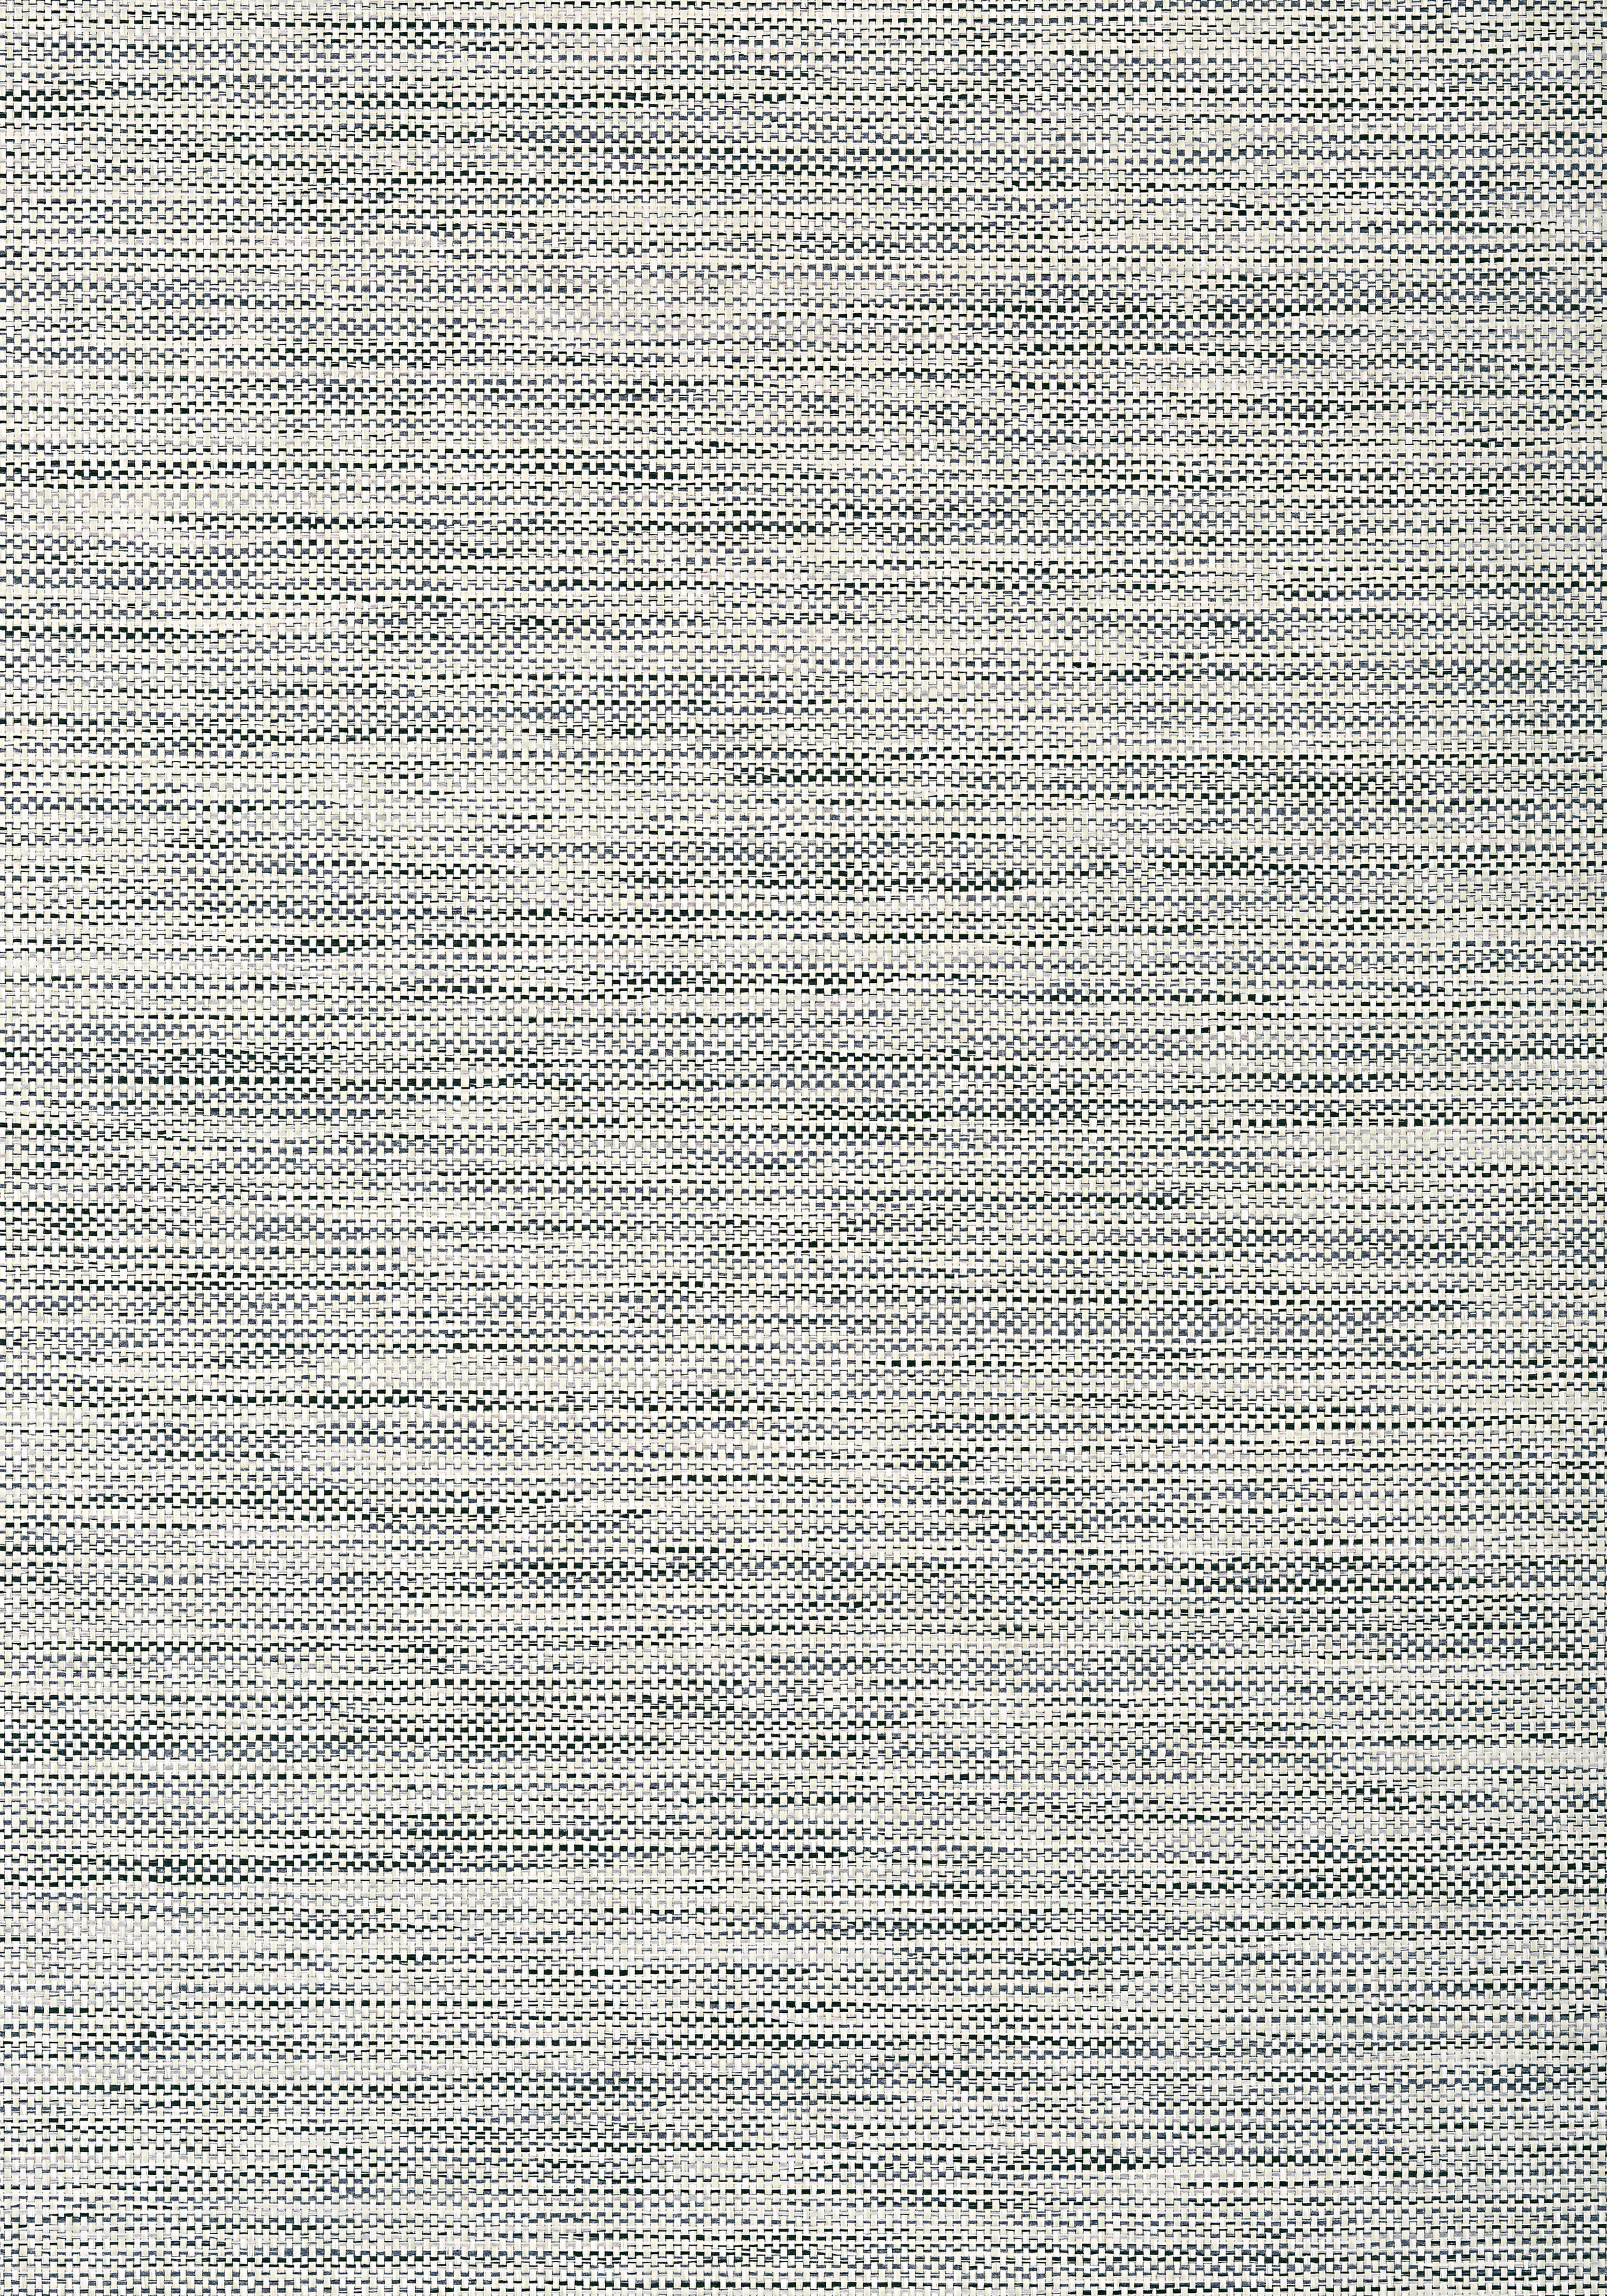 Calistoga Black And White T24113 Collection Grasscloth Resource